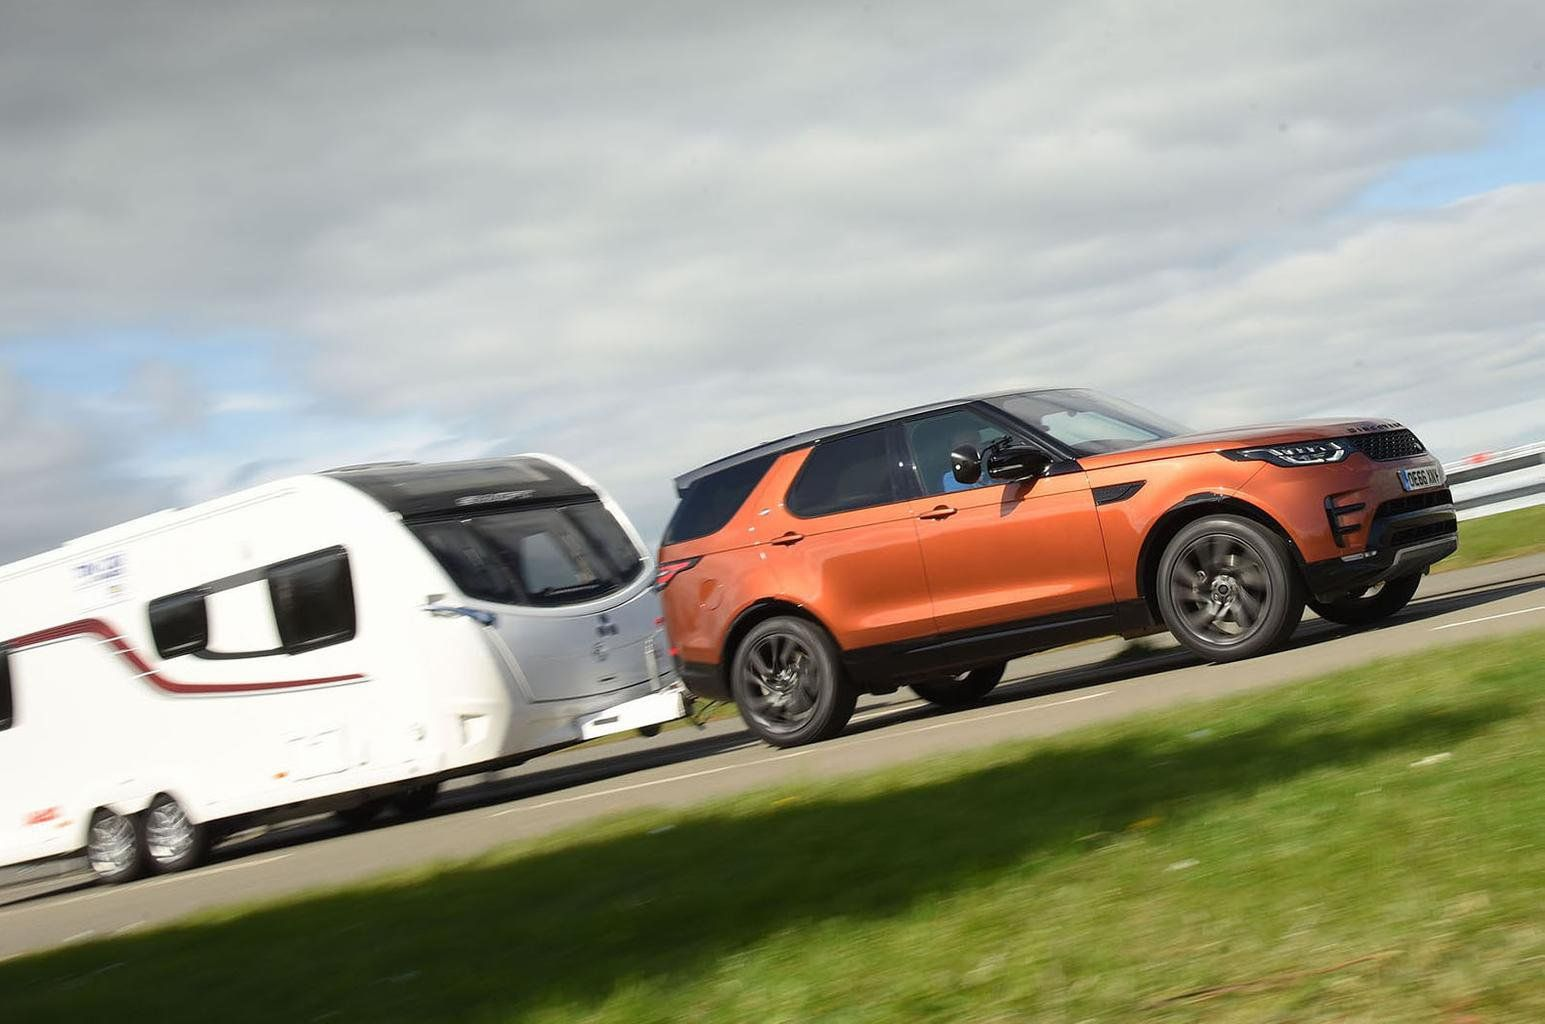 Best cars for towing 2019 Land rover, Range rover sport